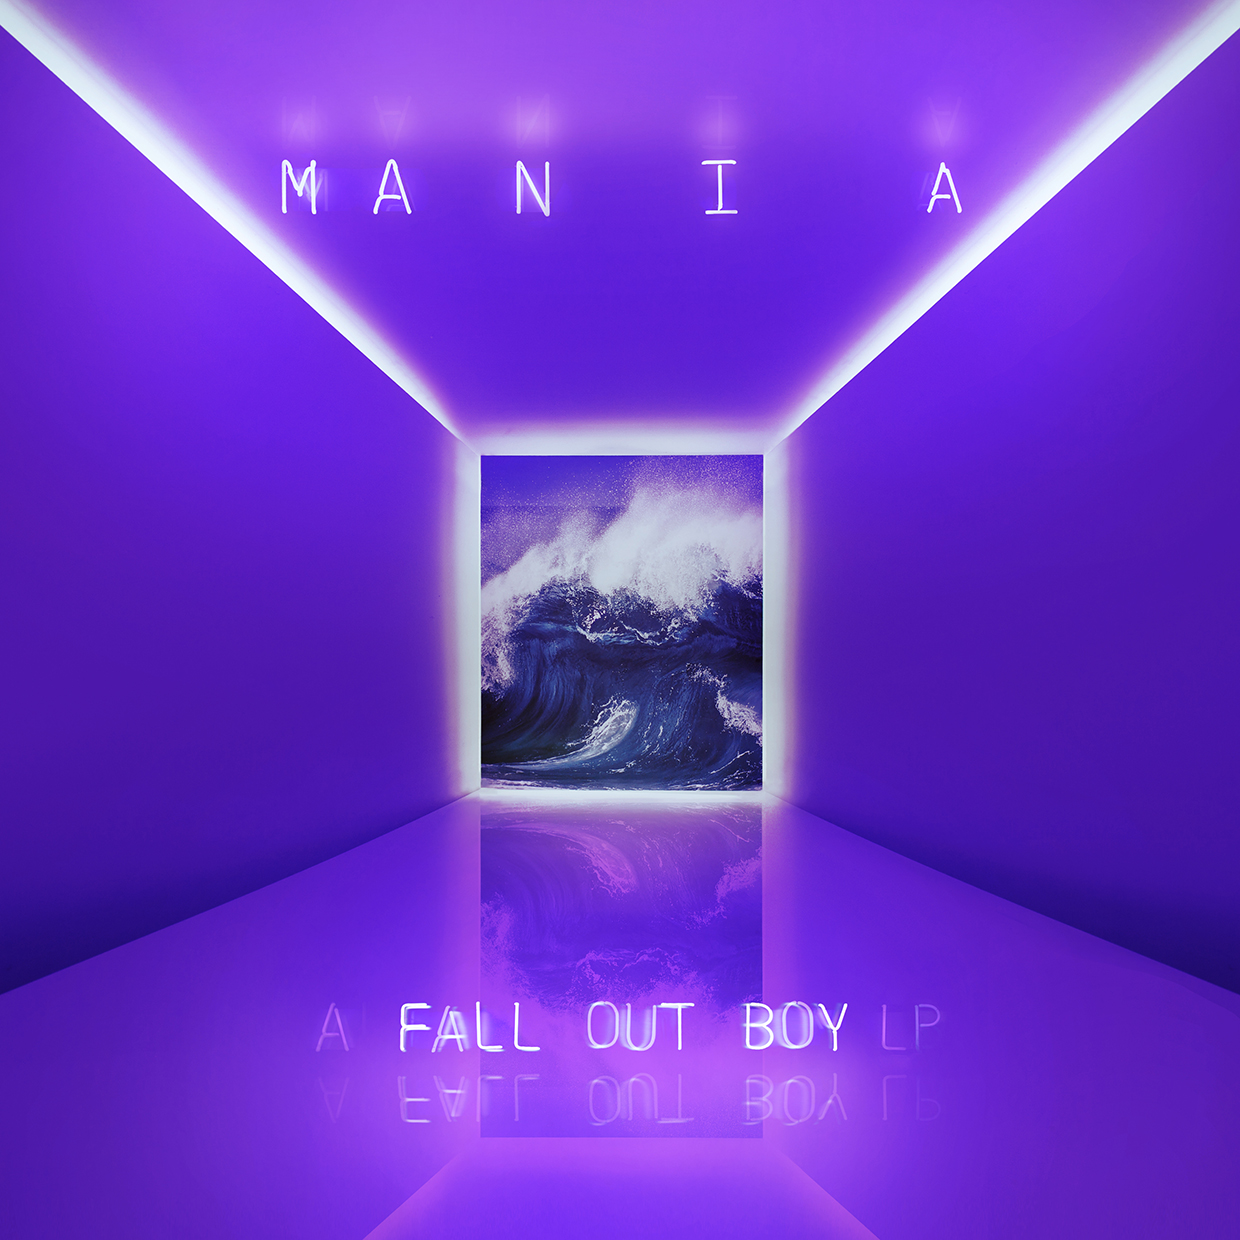 fall out boy mania album new 2017 Fall Out Boy announce new album, M A N I A, share Young and Menace video    watch